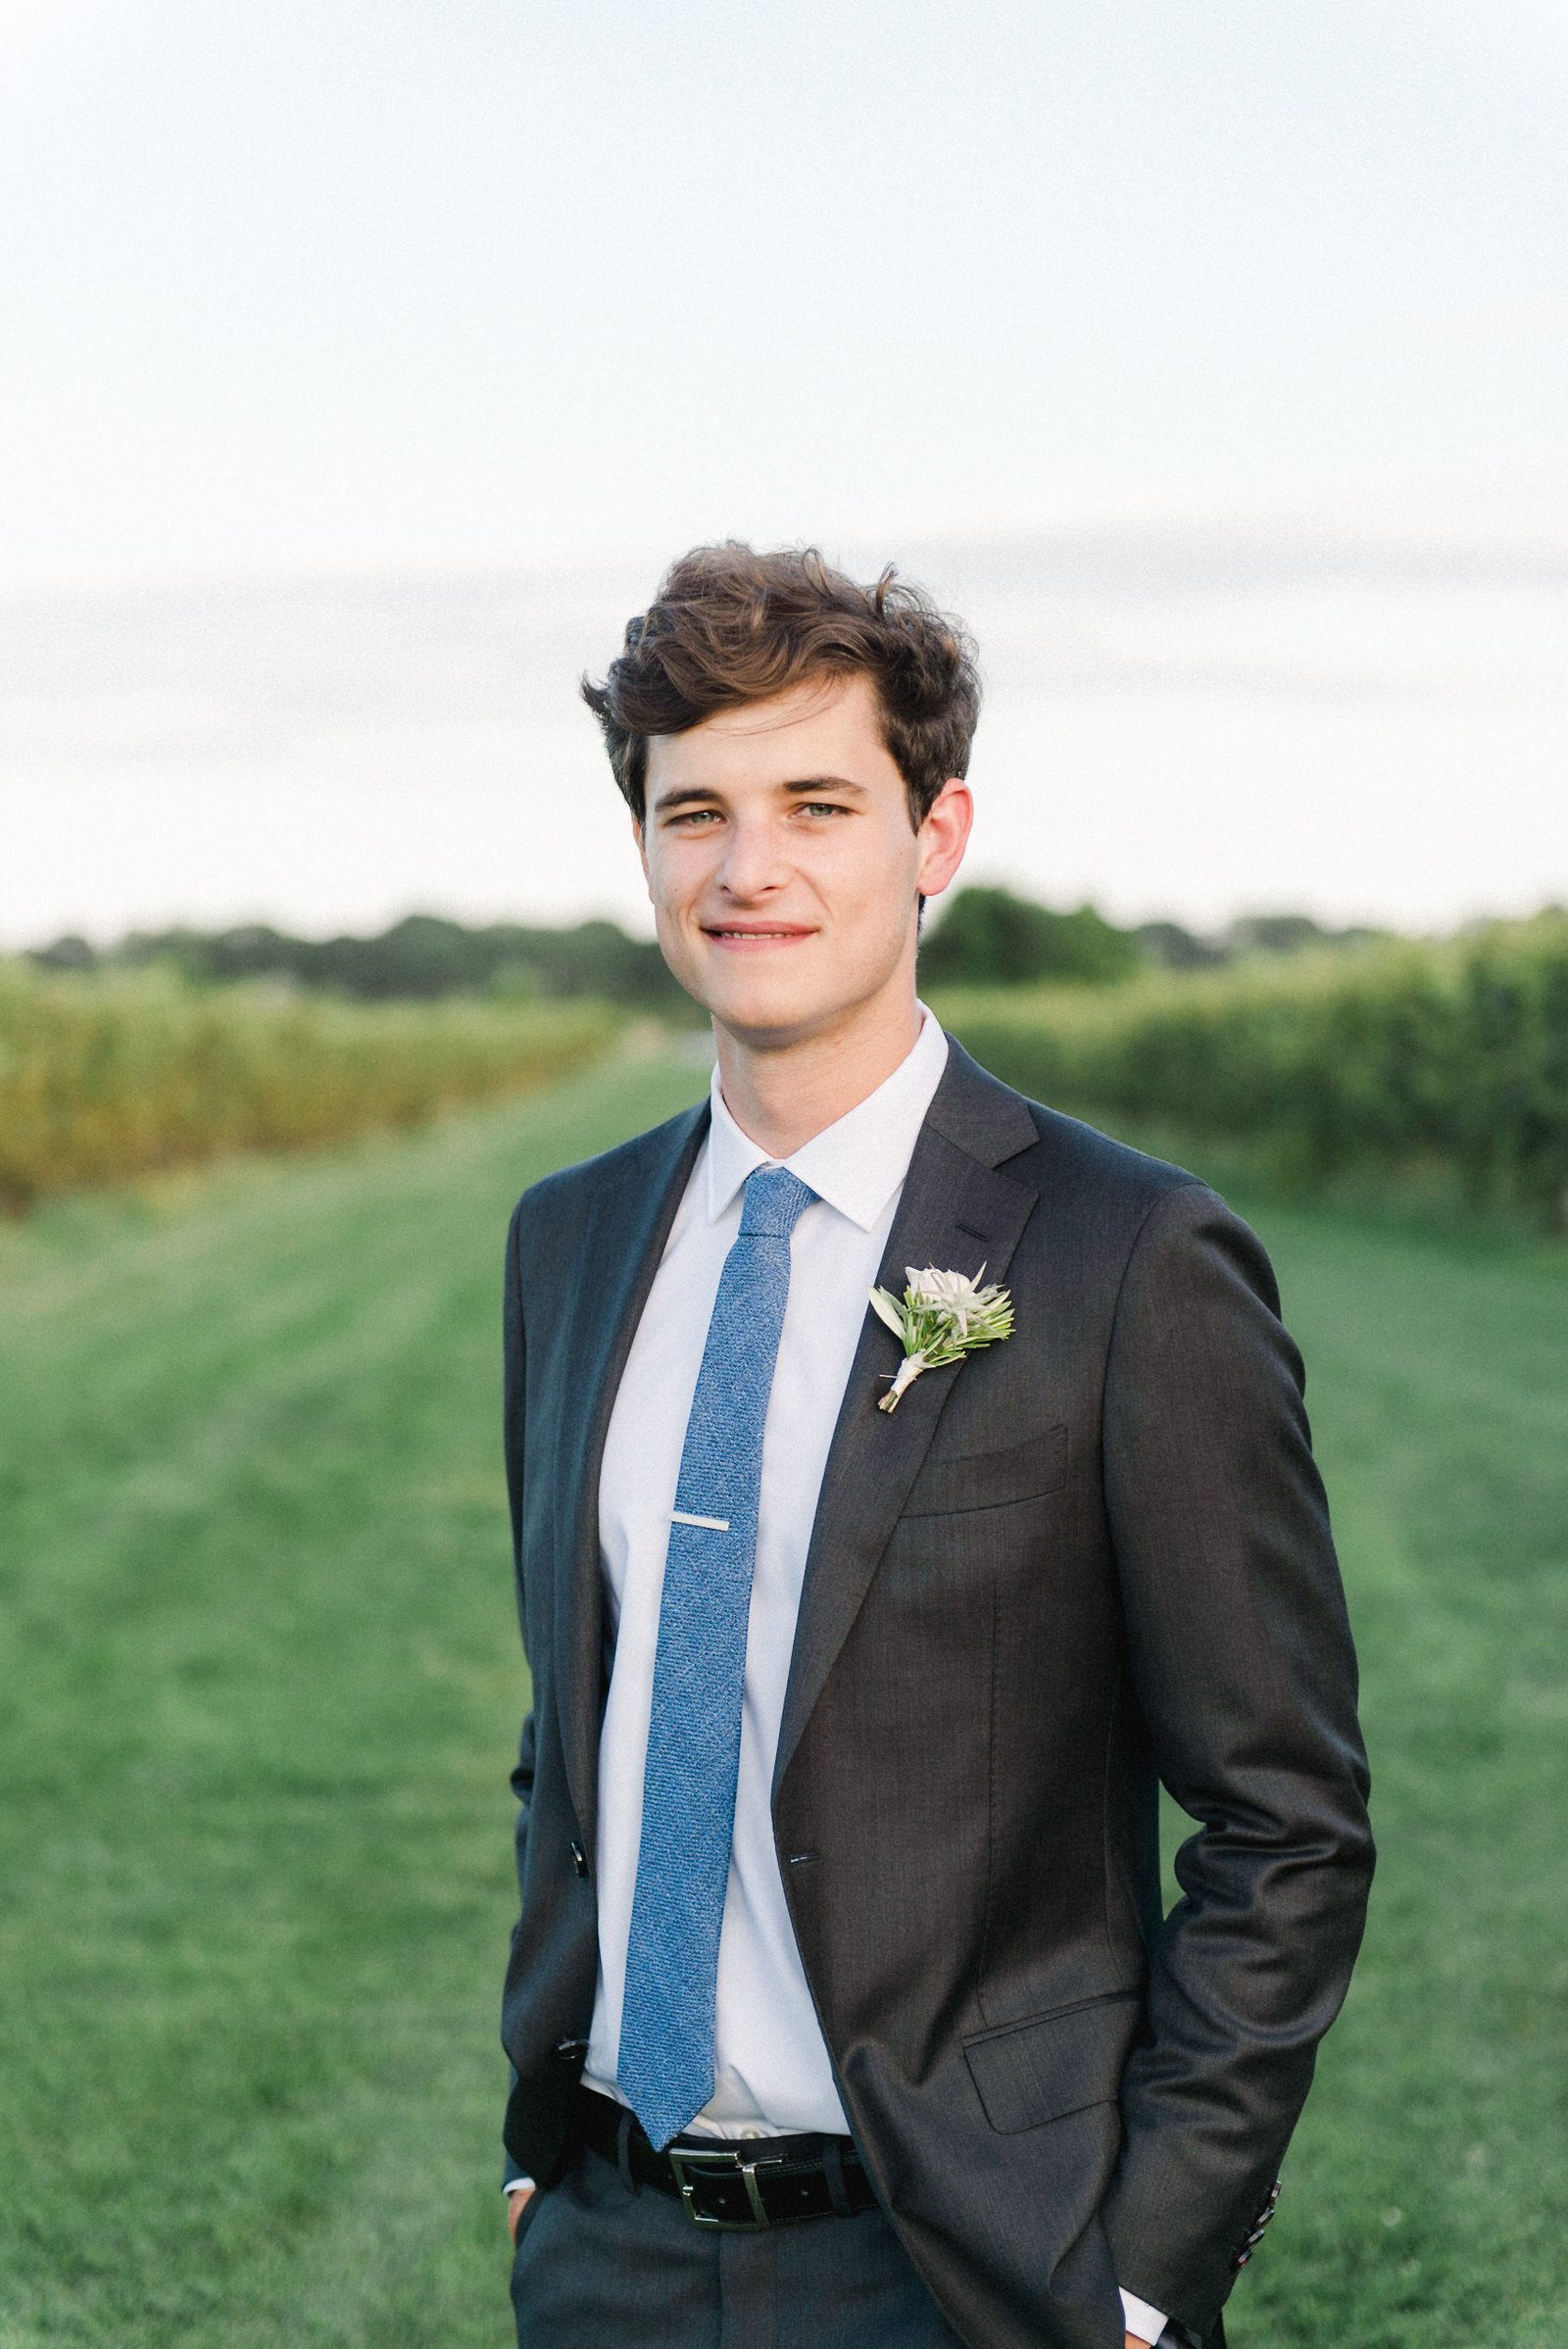 Groom Fashion Gray Suit_Saltwater Farm Vineyard Wedding